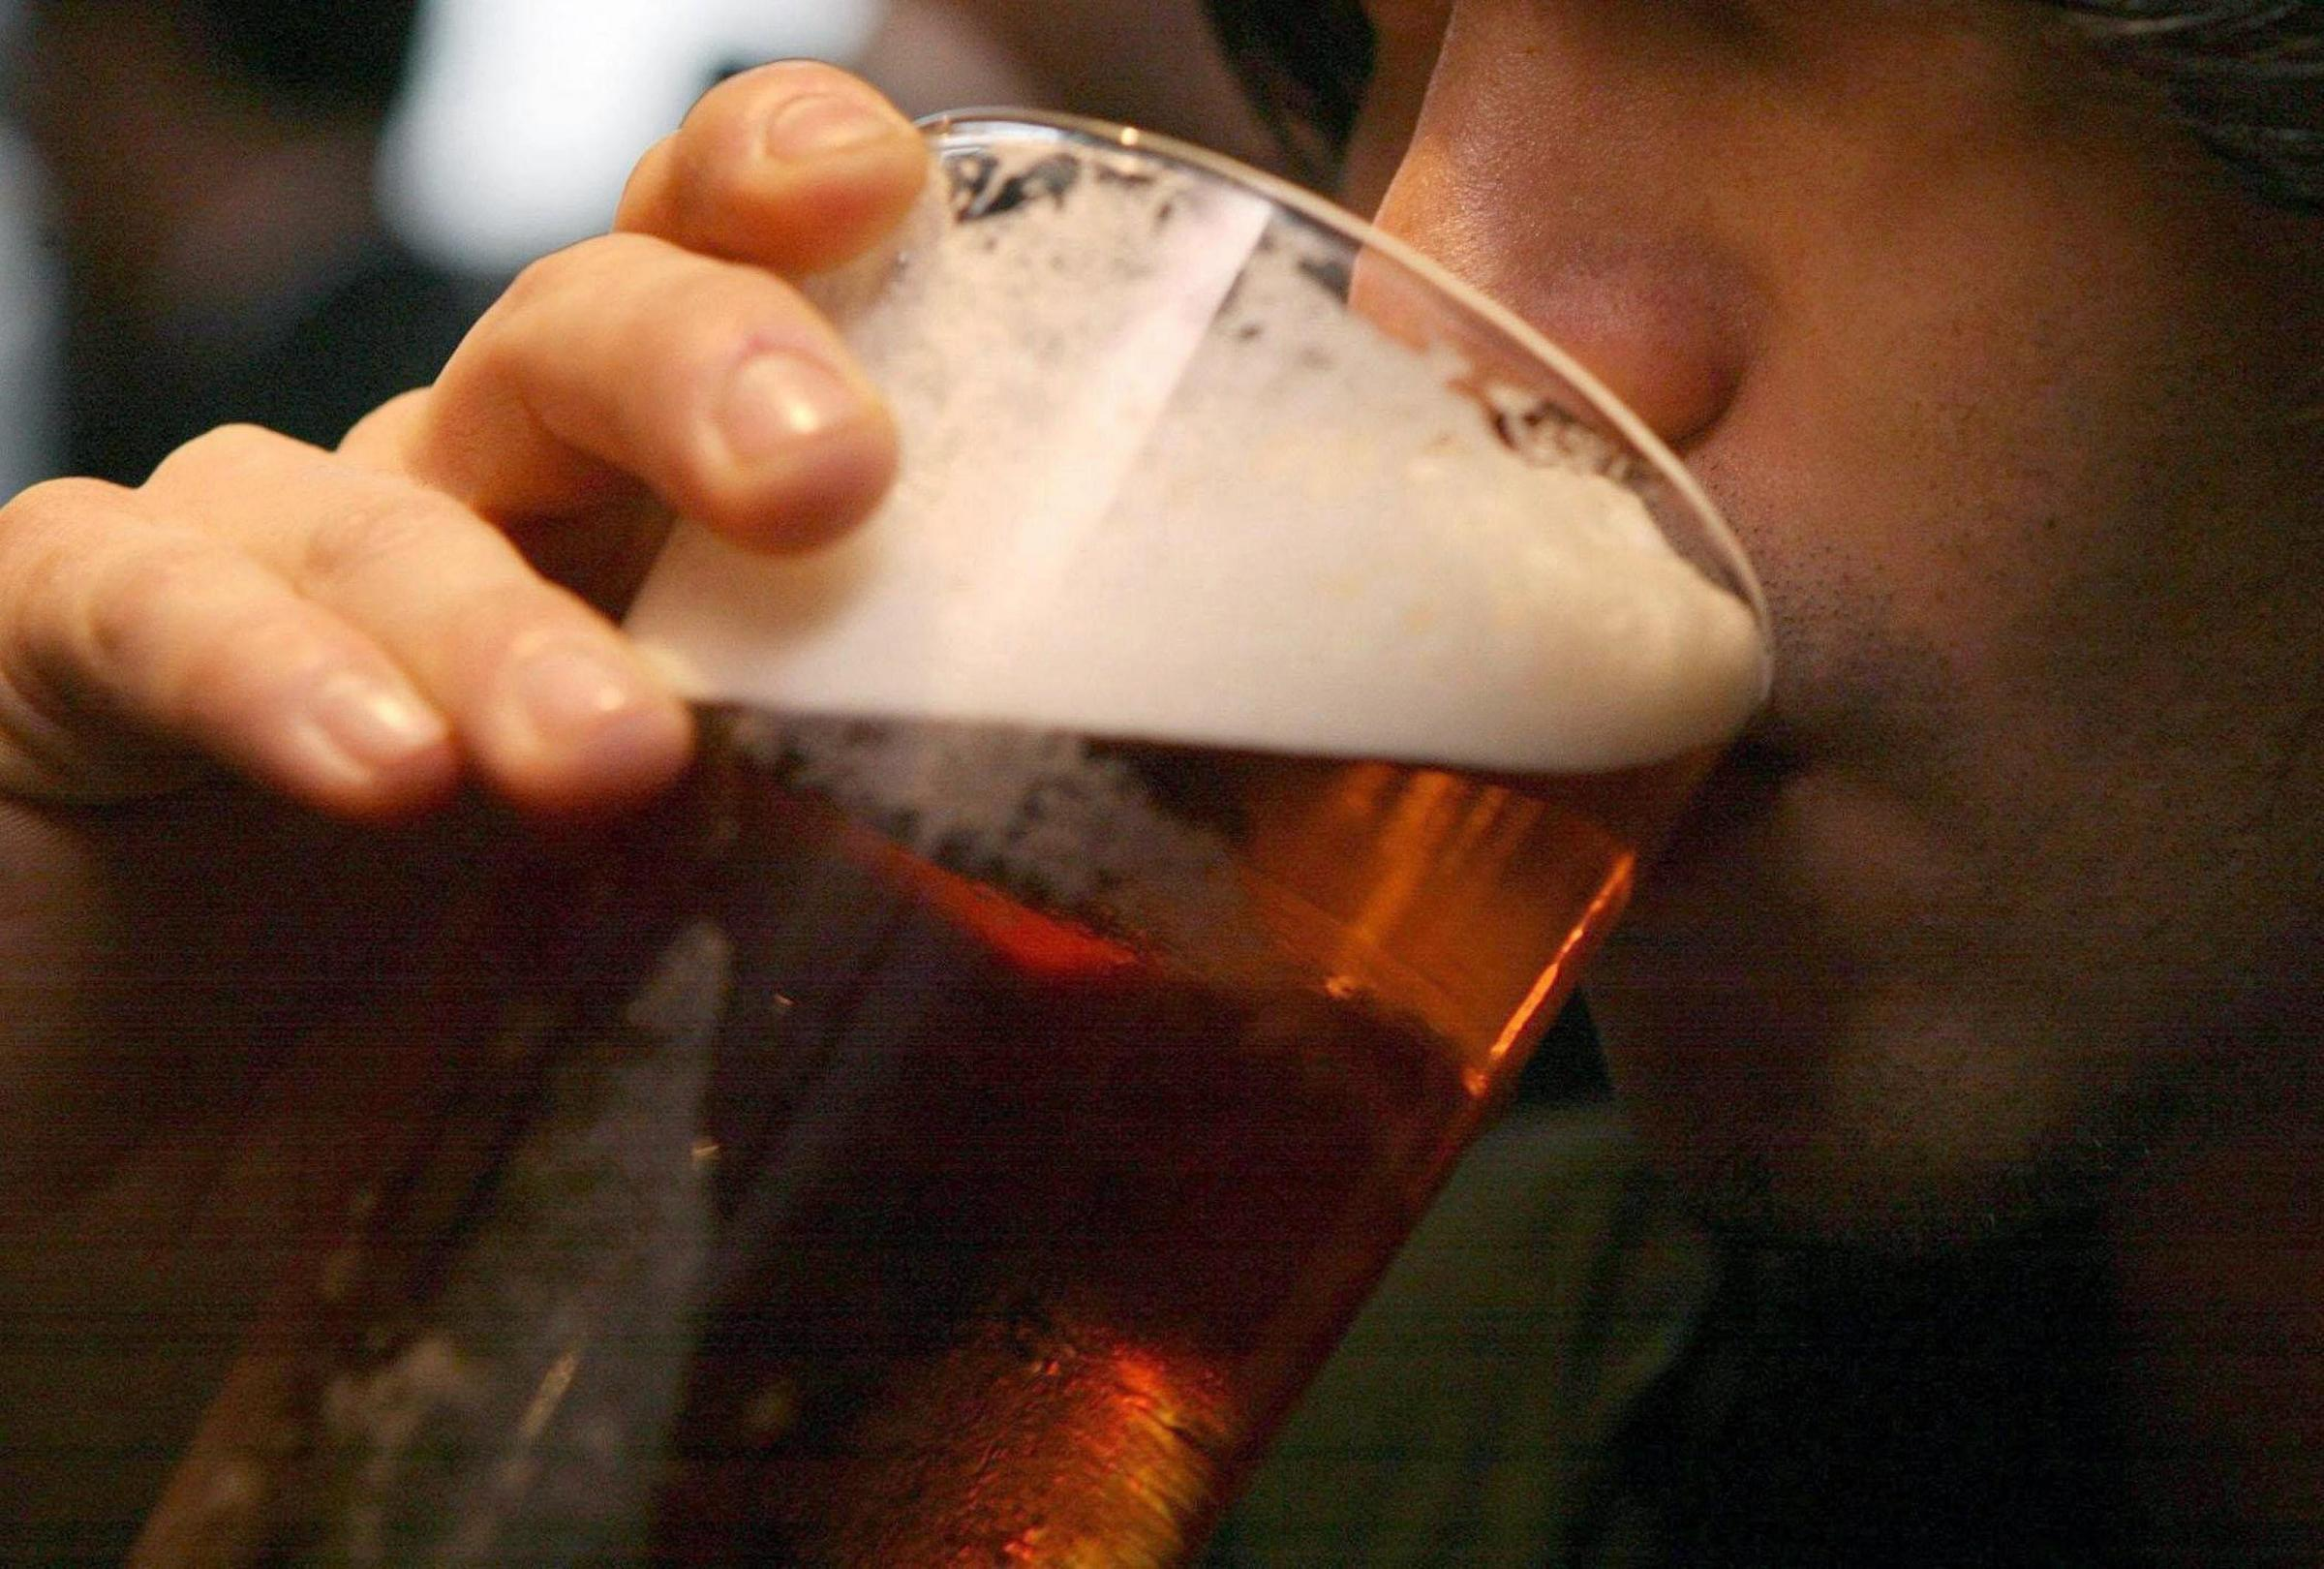 Booze kills 149 people in East Lancashire